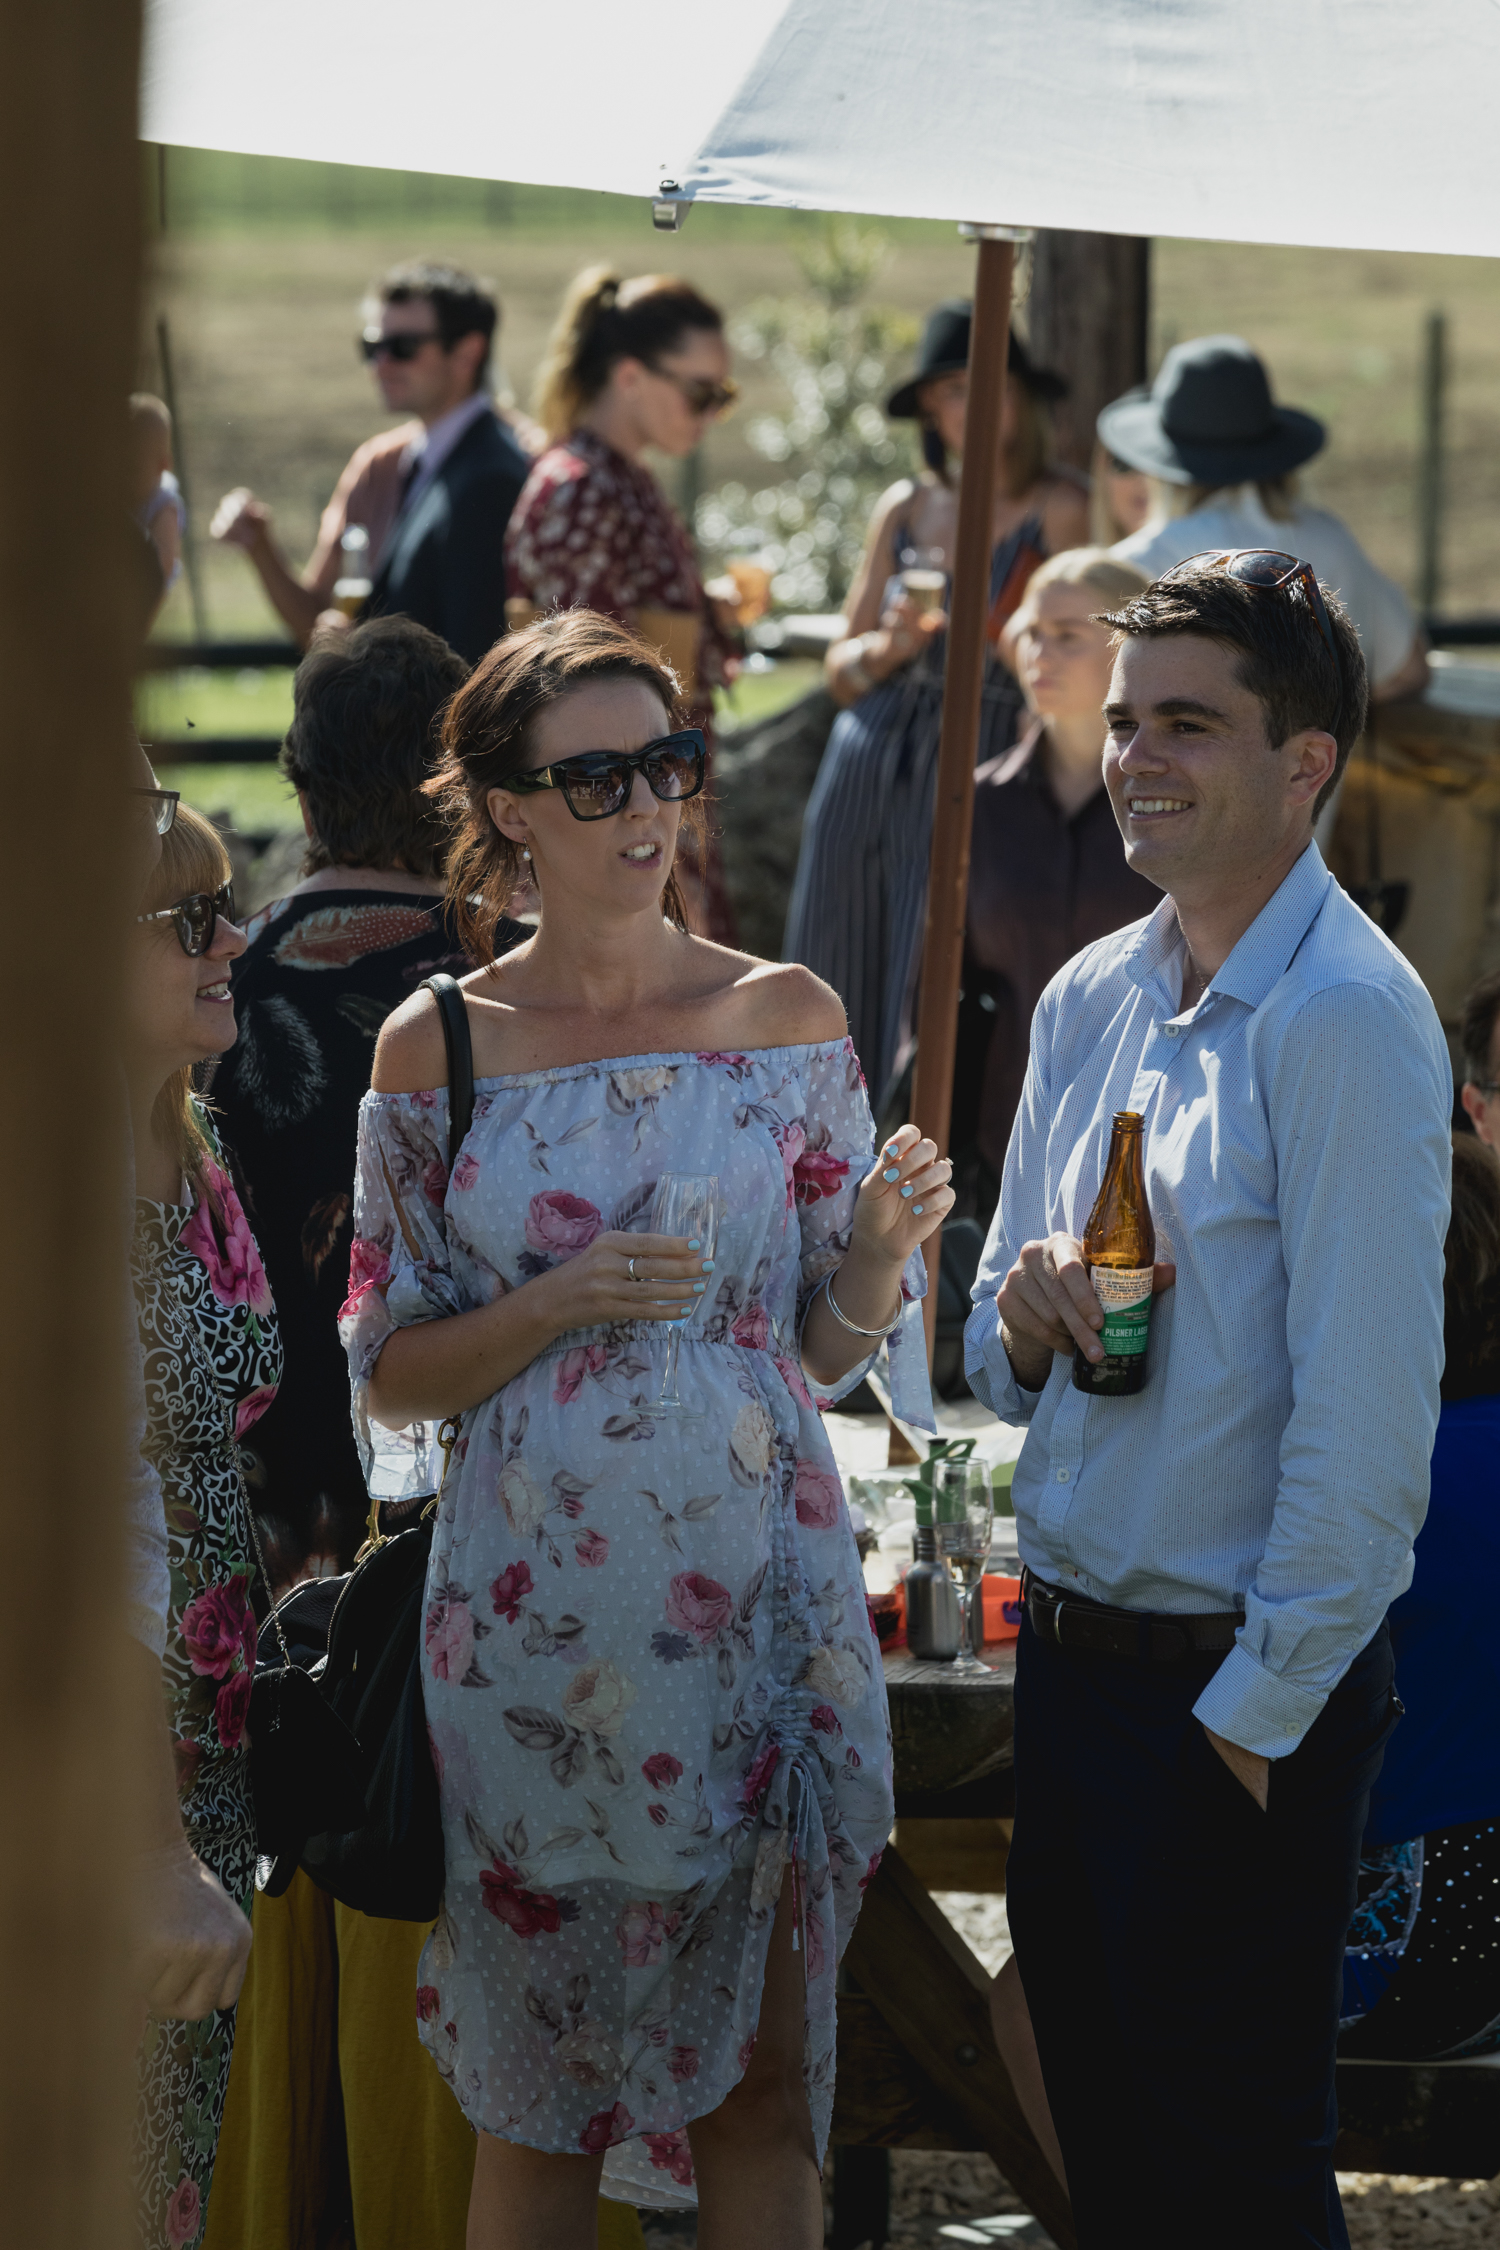 wedding-at-the-red-barn-new-zealand-wedding-photographer-guests.jpg